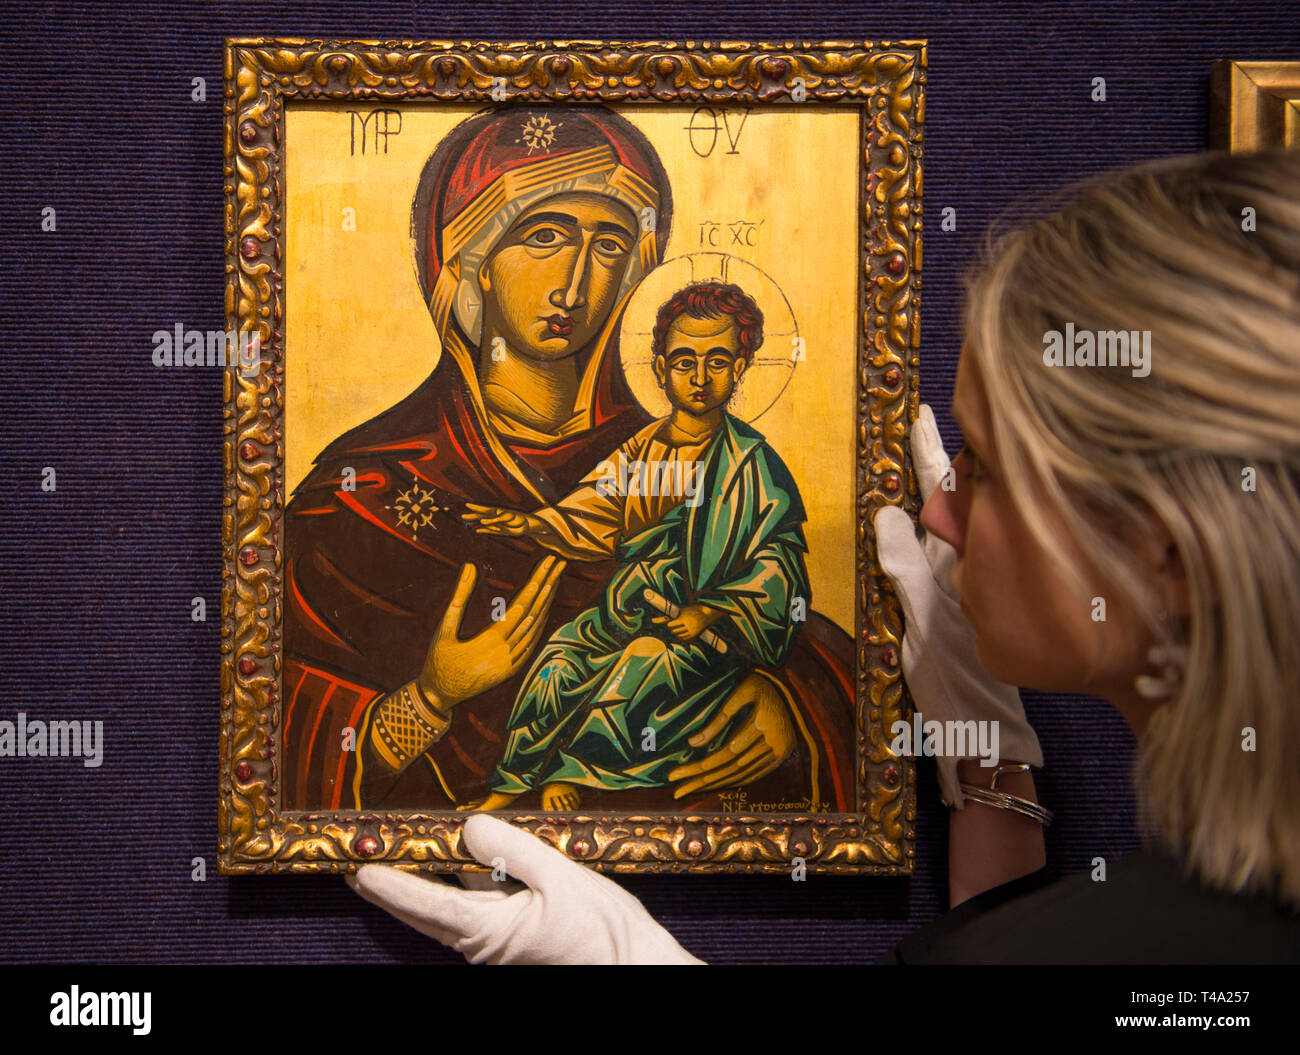 London, UK. 15th April, 2019. Bonhams Greek Art Sale preview takes place at New Bond Street Image: Nikos Engonopoulos. Vierge a l'Enfant. It is estimated at £5,000-7,000. The sale takes place on 17 April. Credit: Malcolm Park/Alamy Live News. - Stock Image